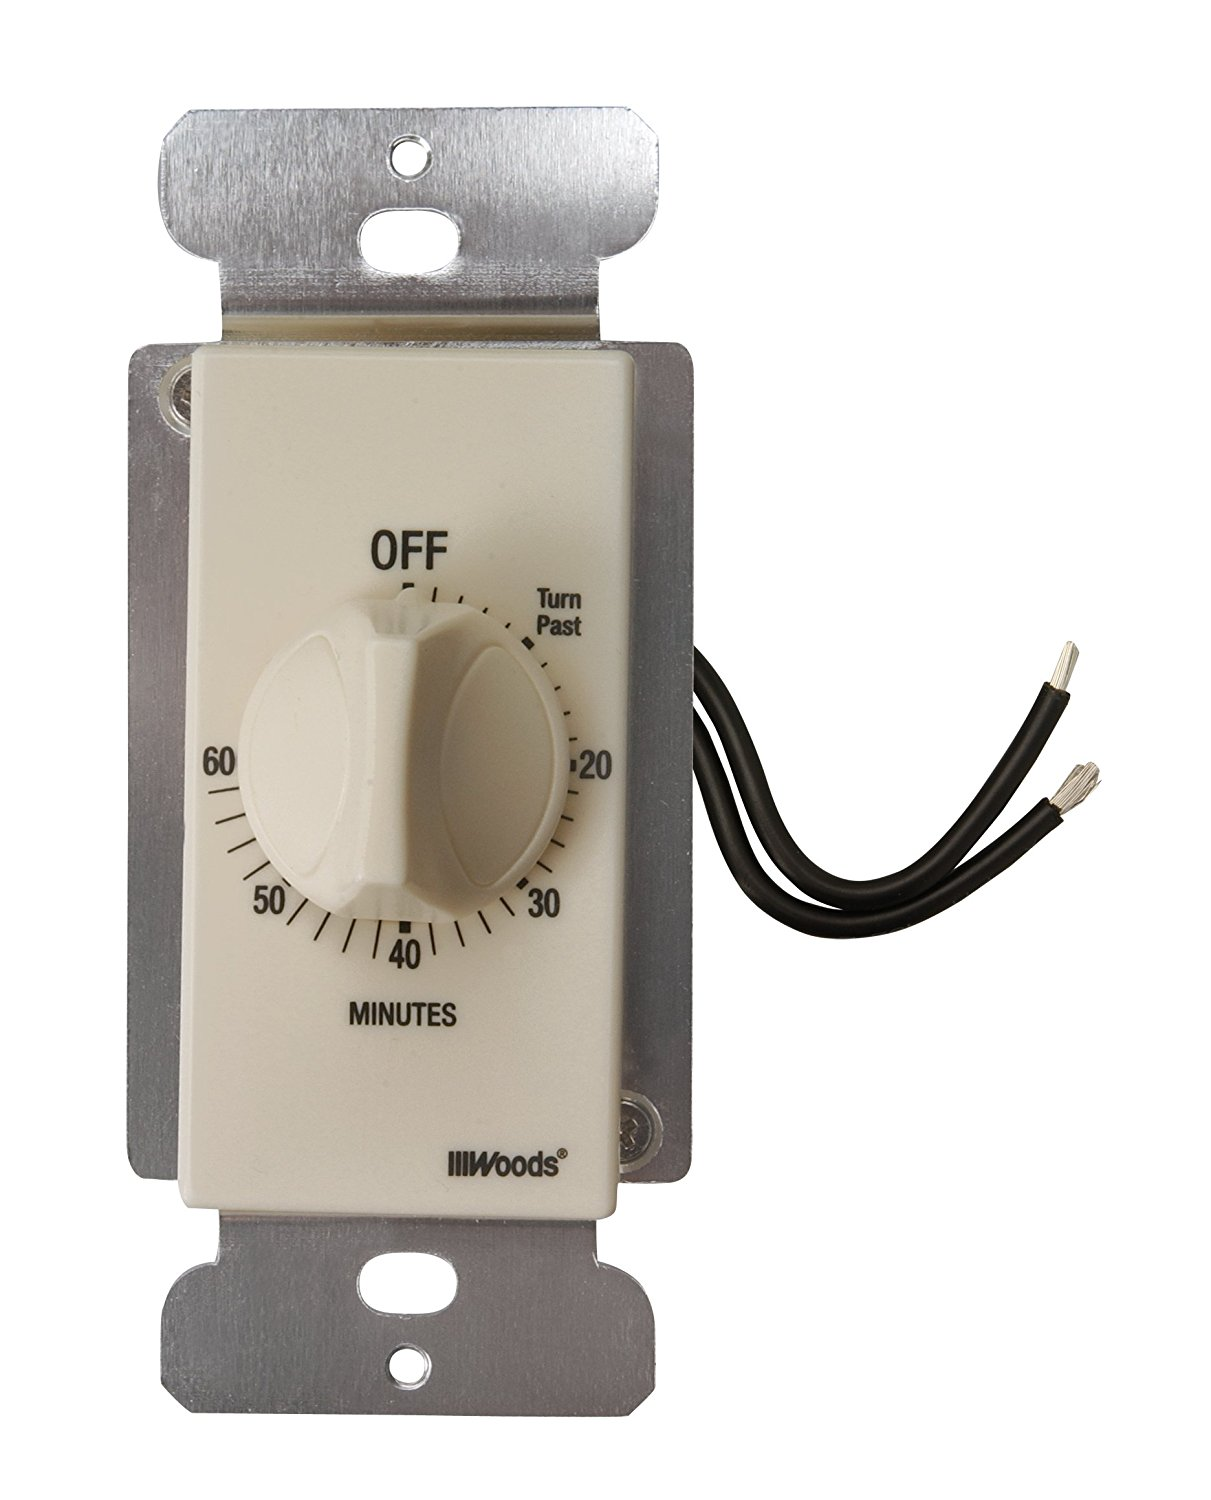 59718wd decora style 60 minute timer mechanical wall switch 59718wd decora style 60 minute timer mechanical wall switch light almond by woods ship from us walmart sciox Gallery